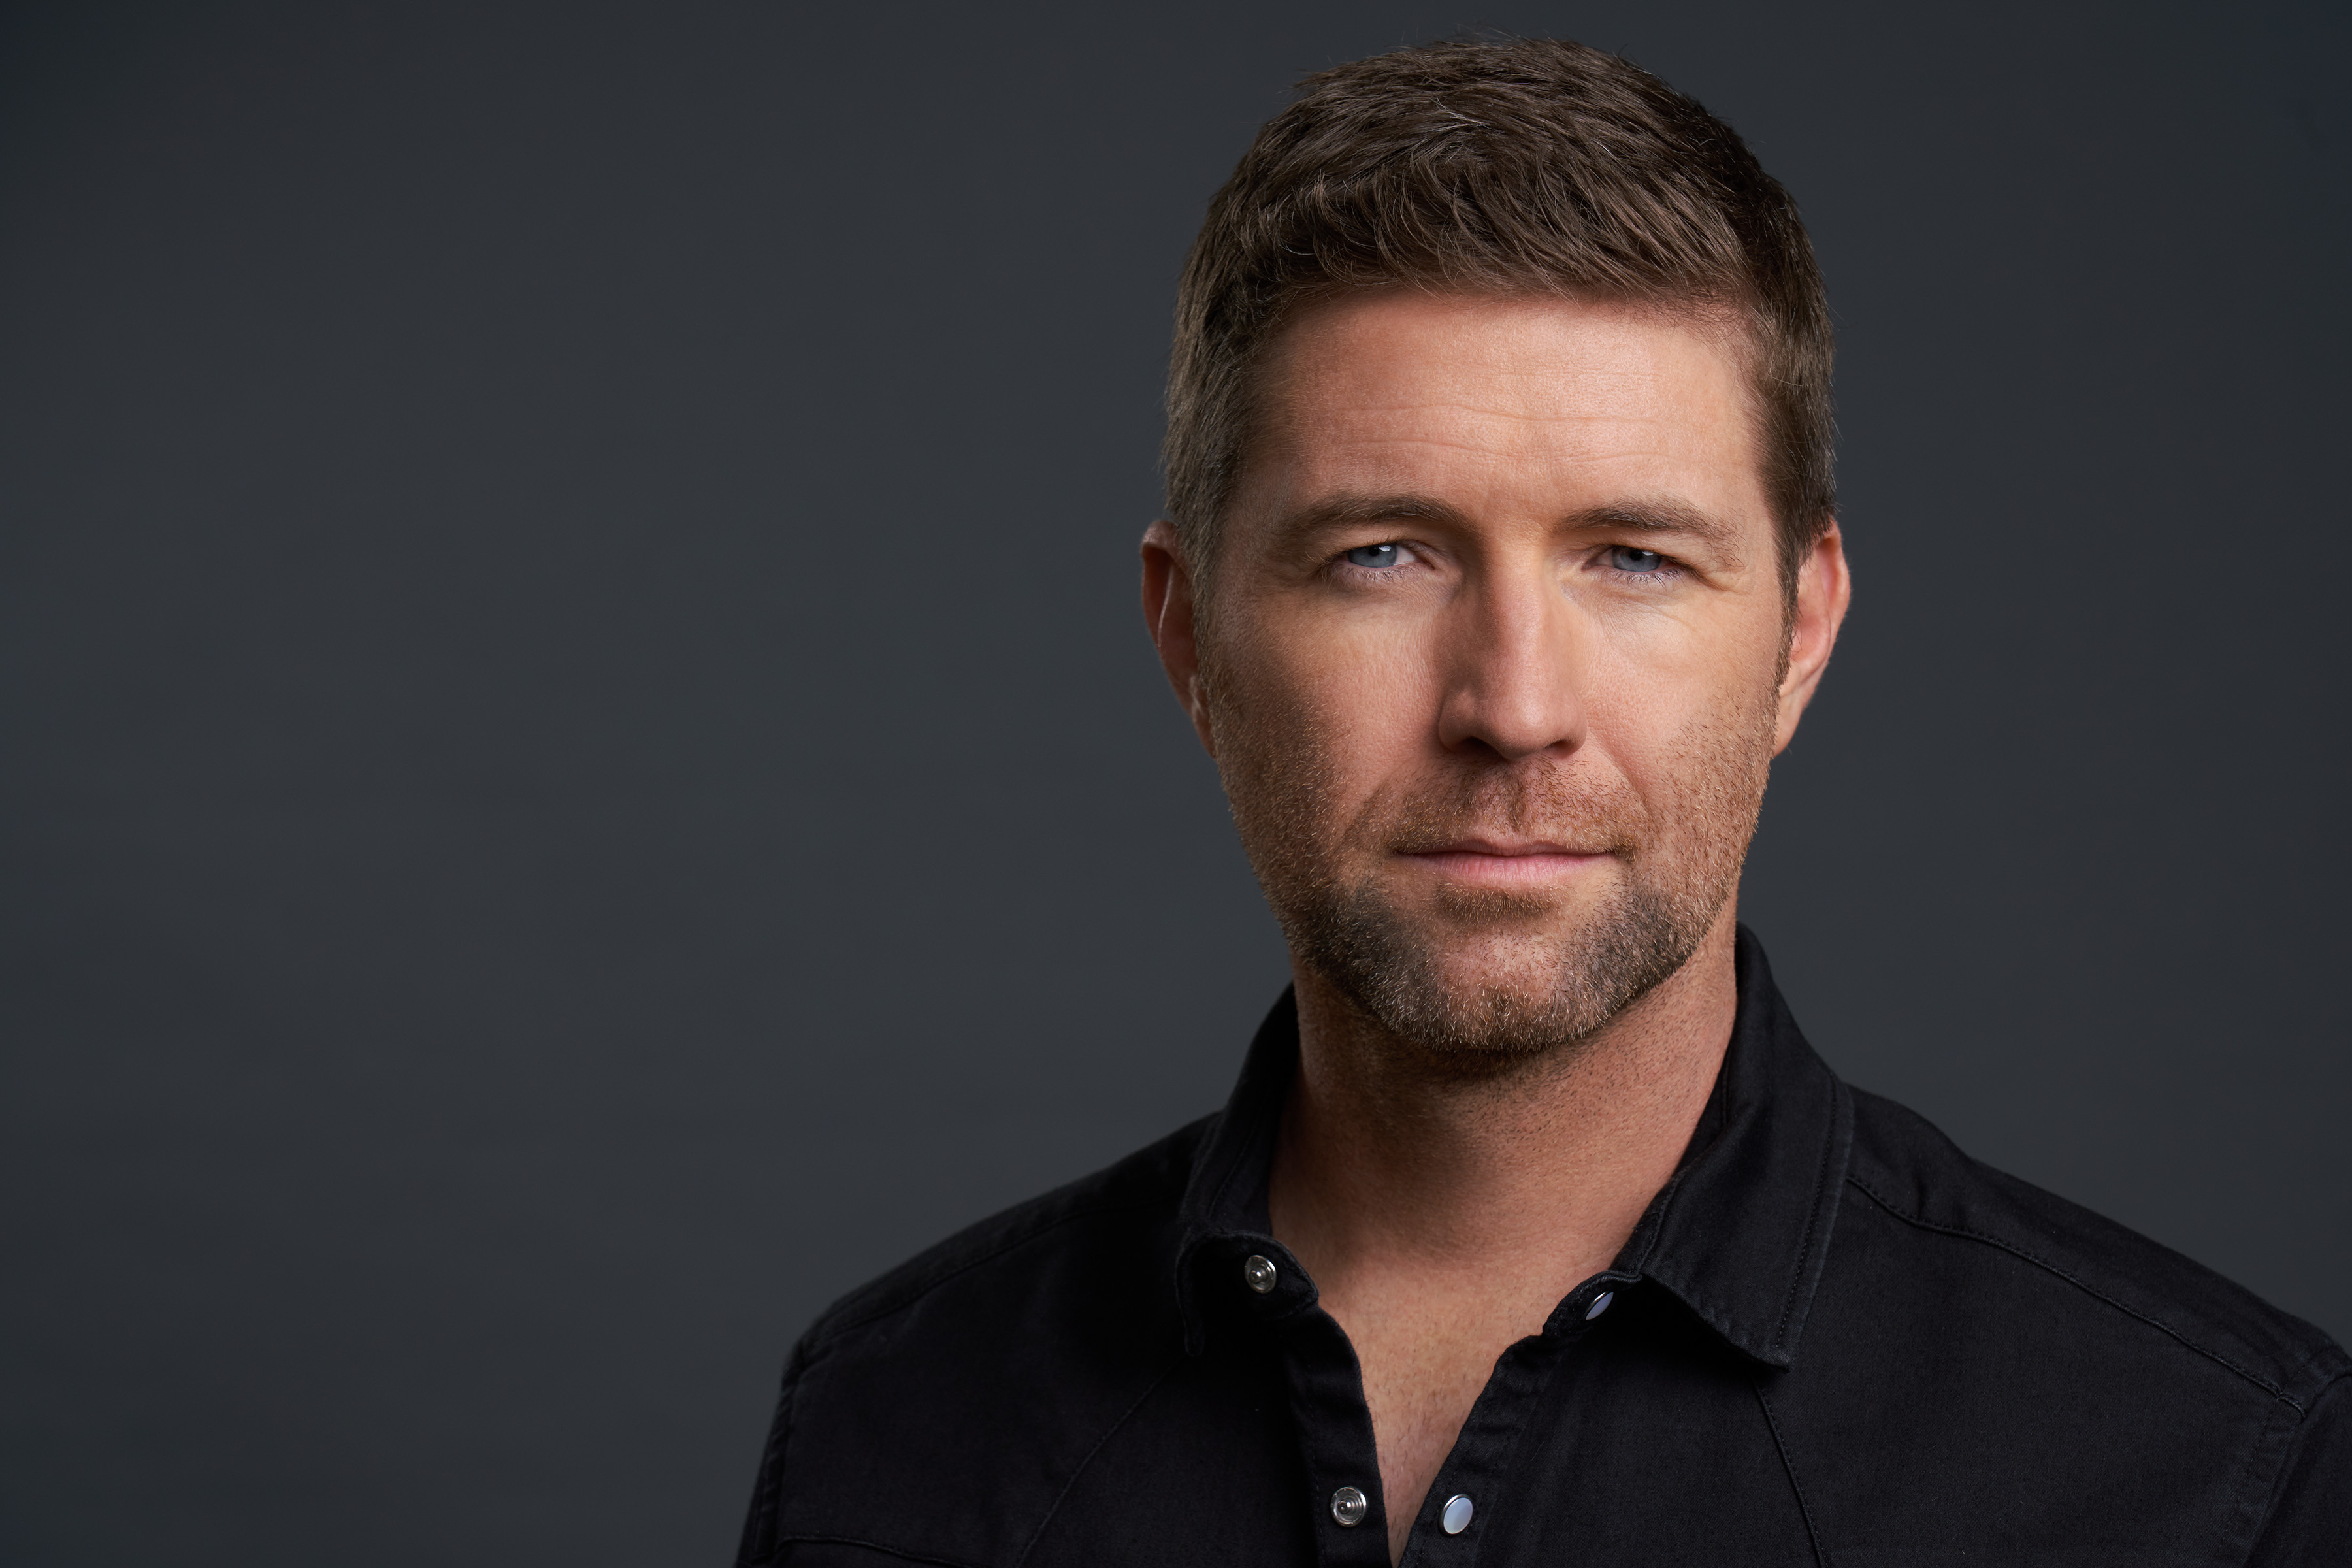 Country Music's Josh Turner as featured on Jesus Calling podcast